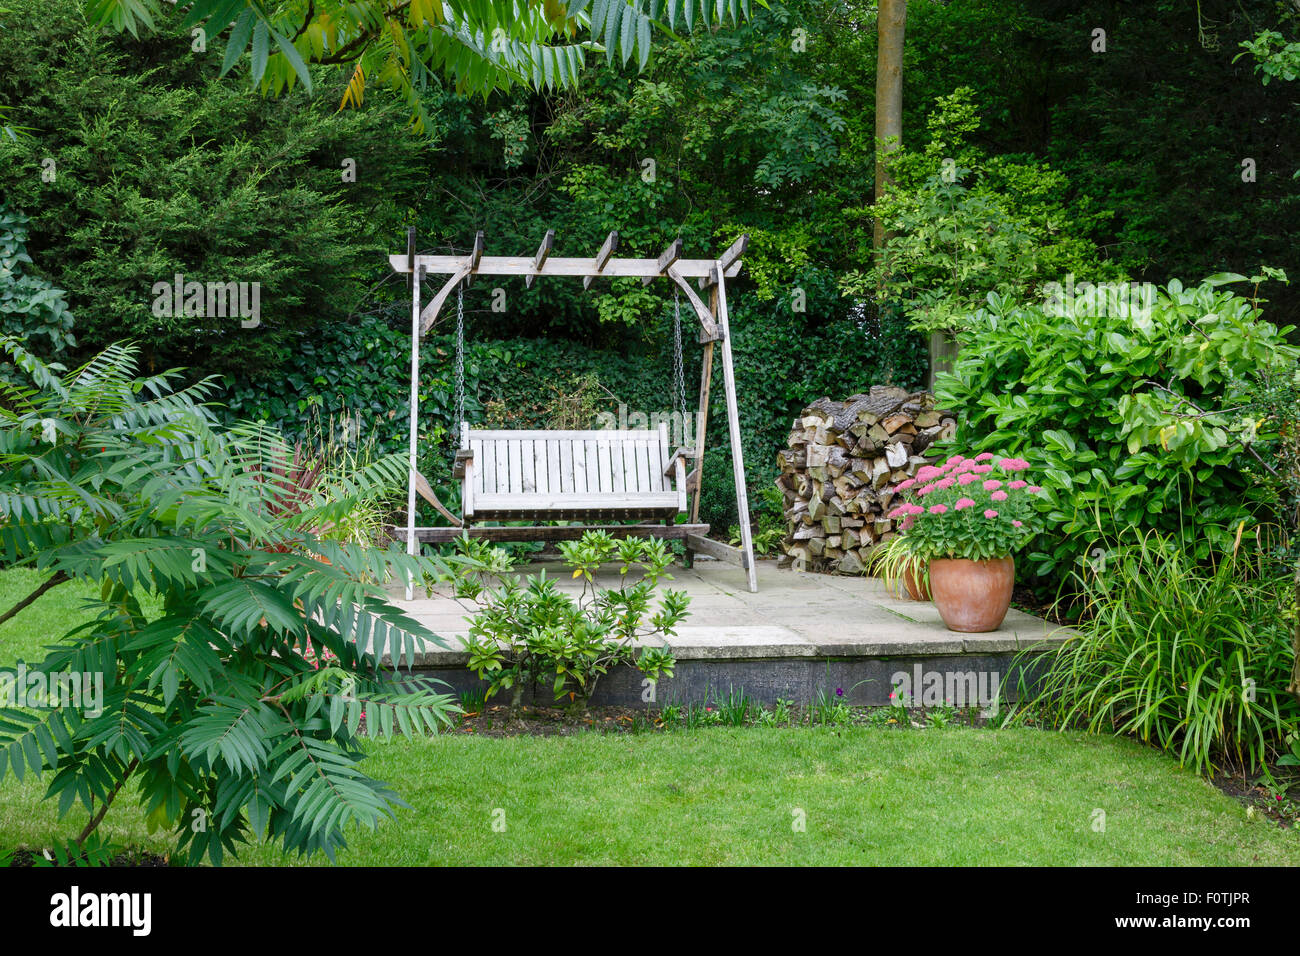 Back Garden And Patio With Furniture In A British Home   Stock Image